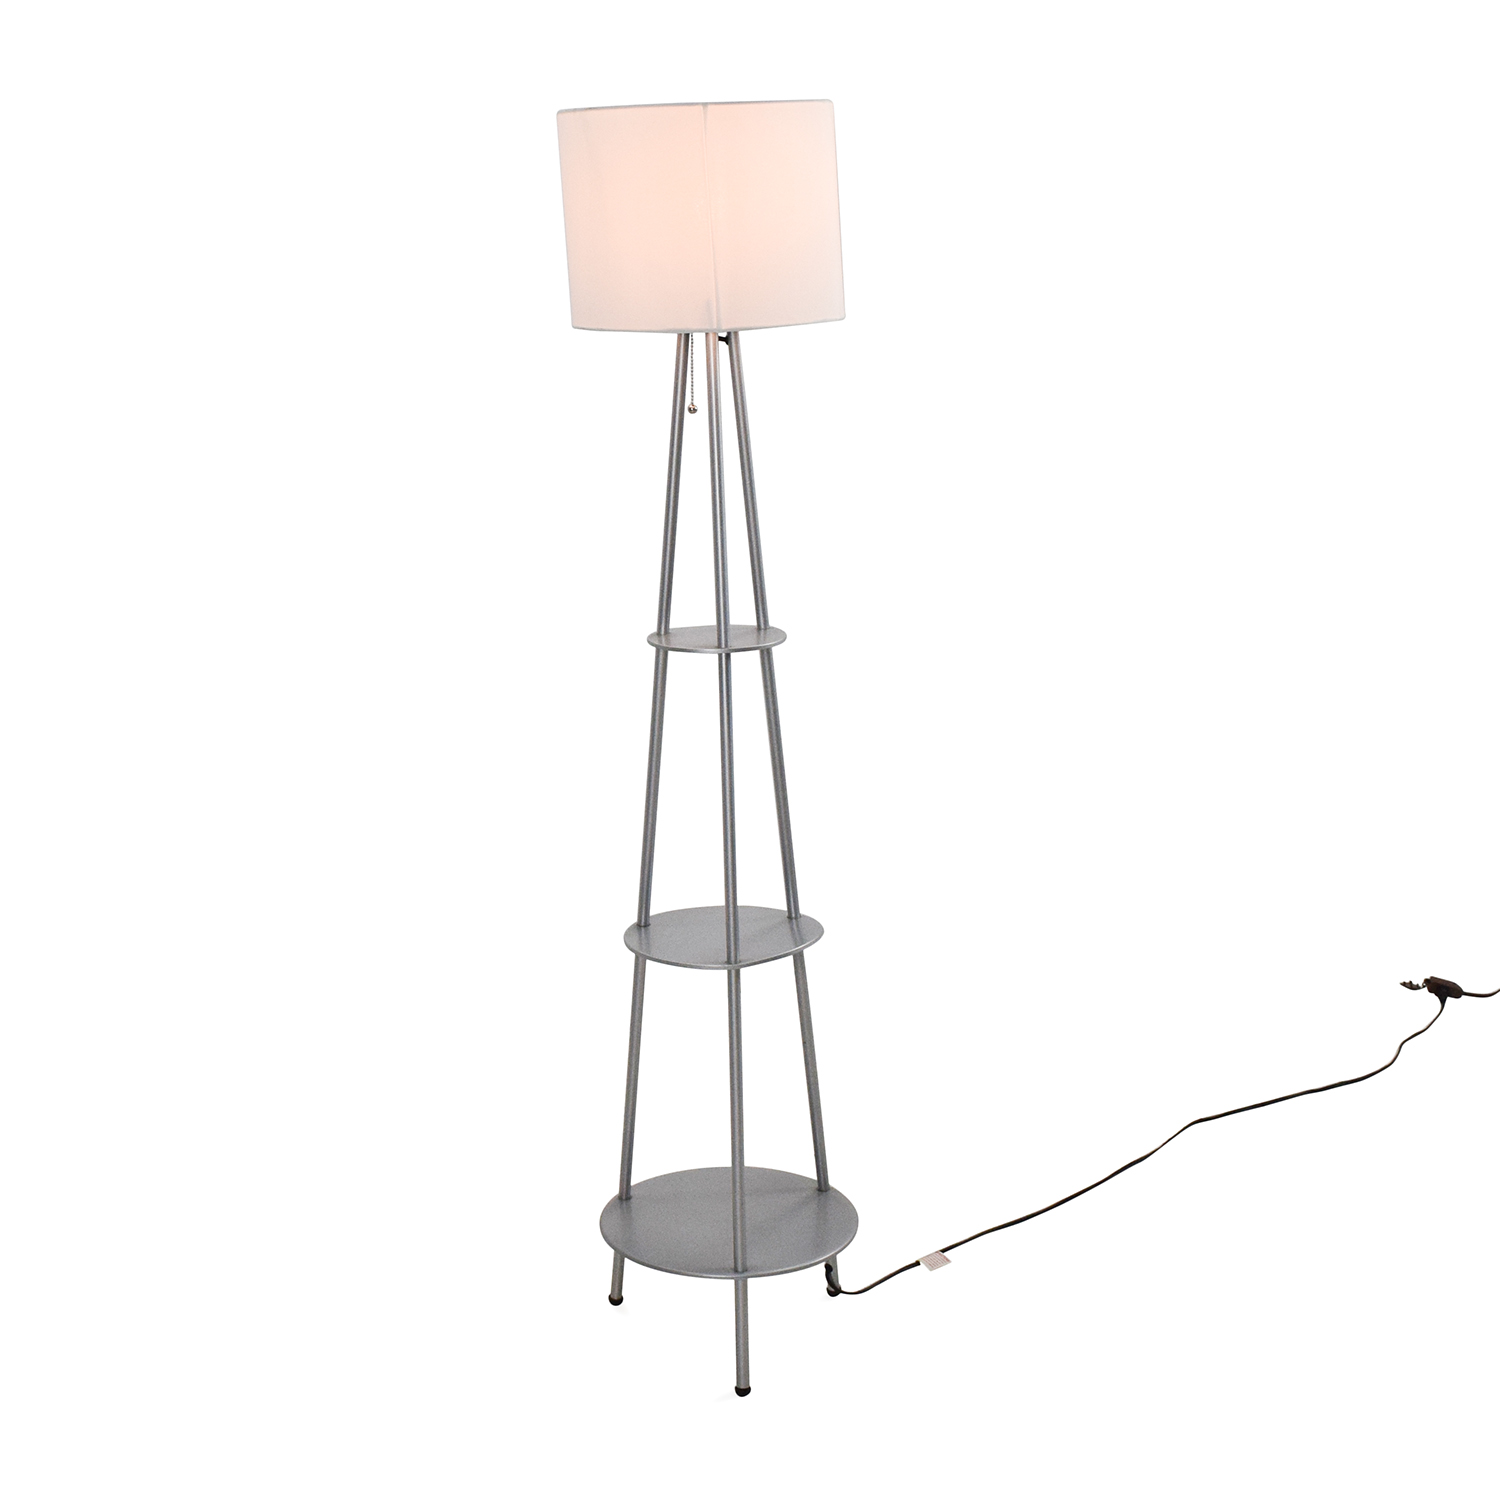 Target Tall Stylish Lamp / Decor